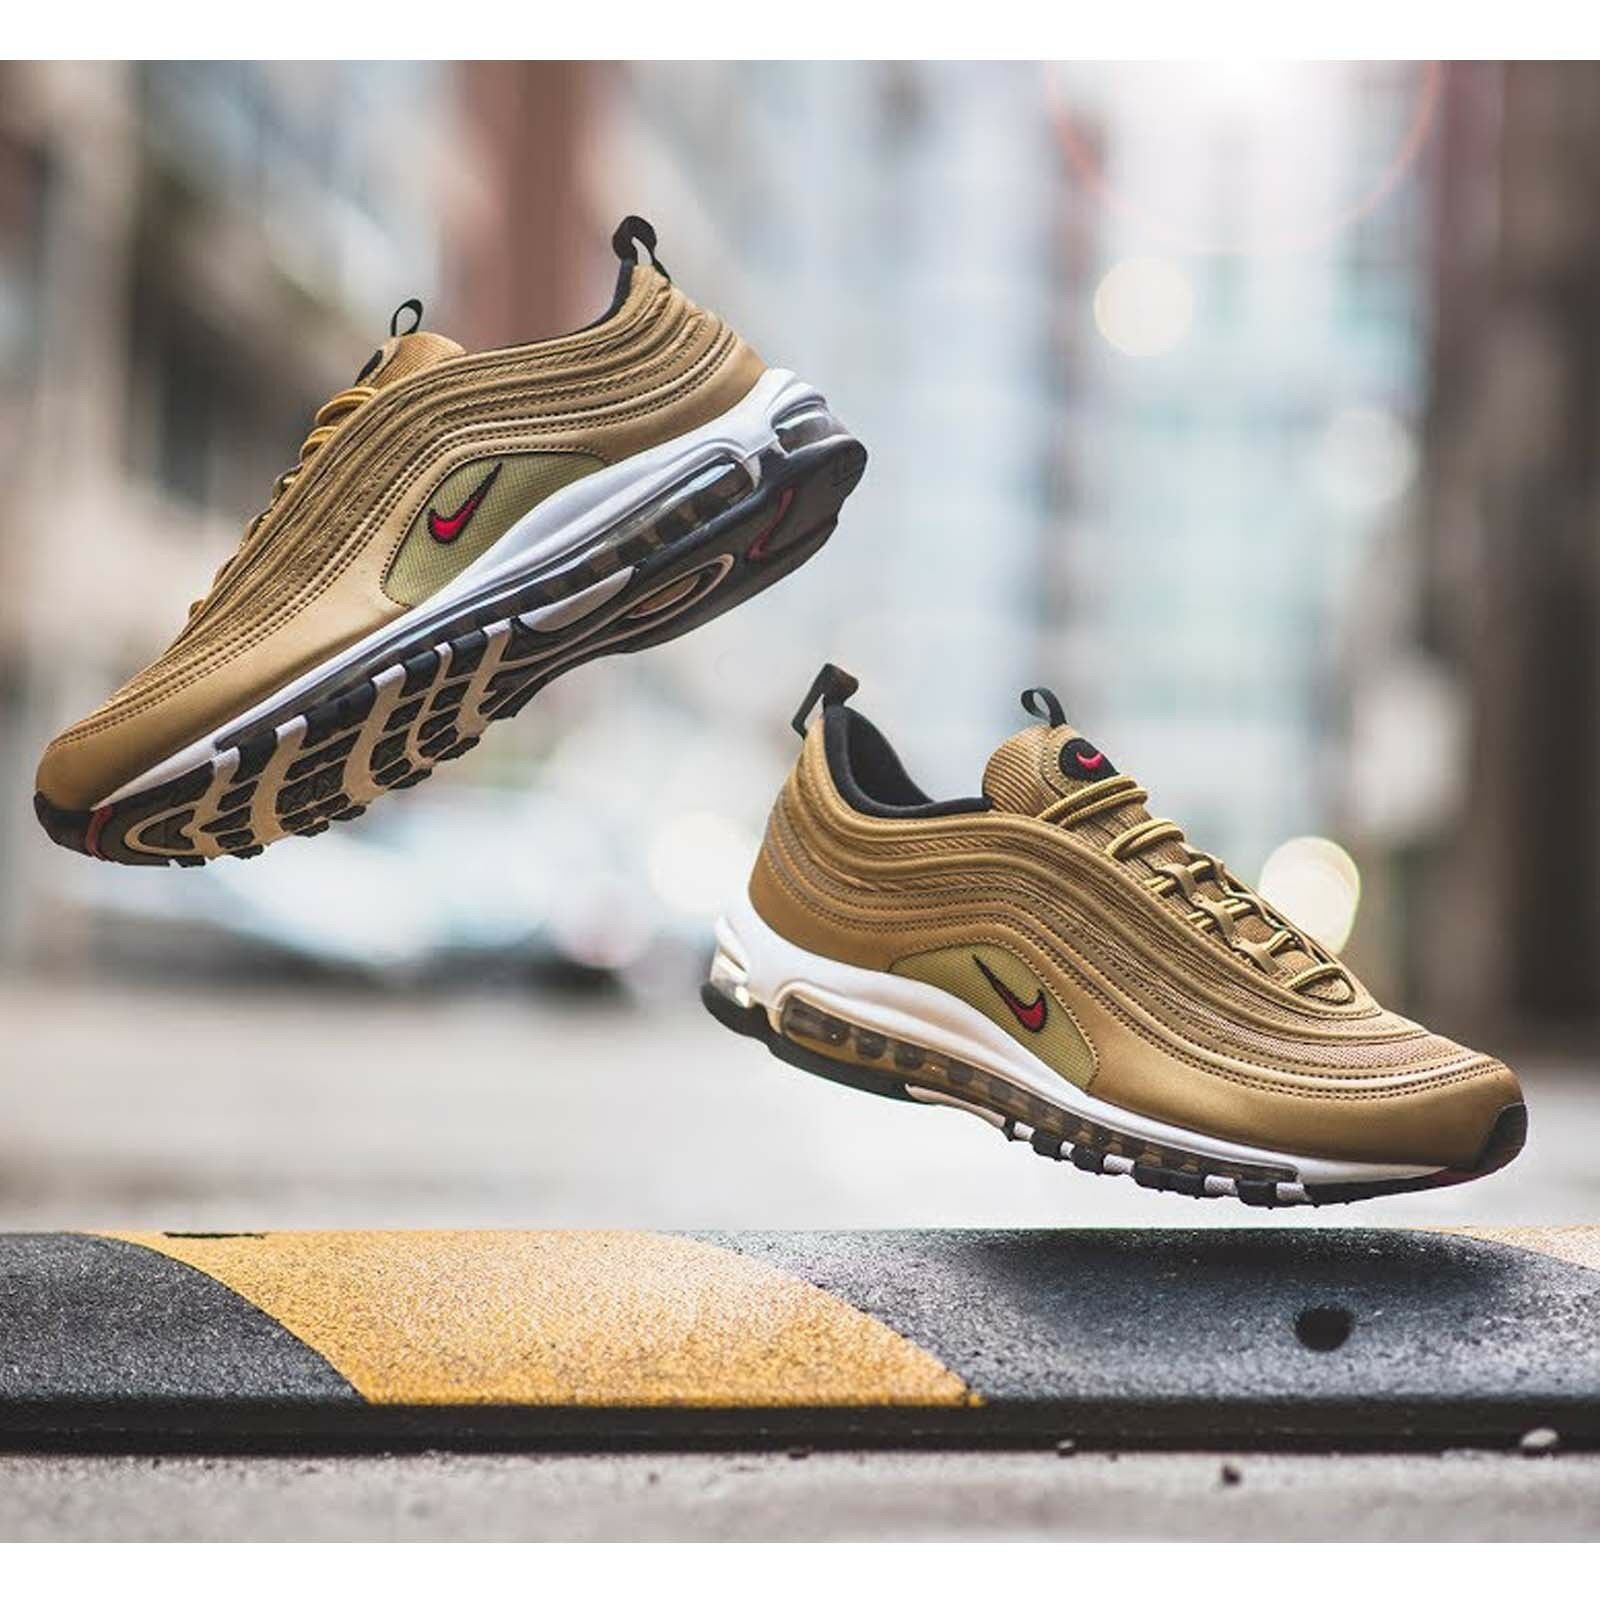 Nike Air Max 97 OG QS Metallic oro Bullet Mens donna Running scarpe Pick 1